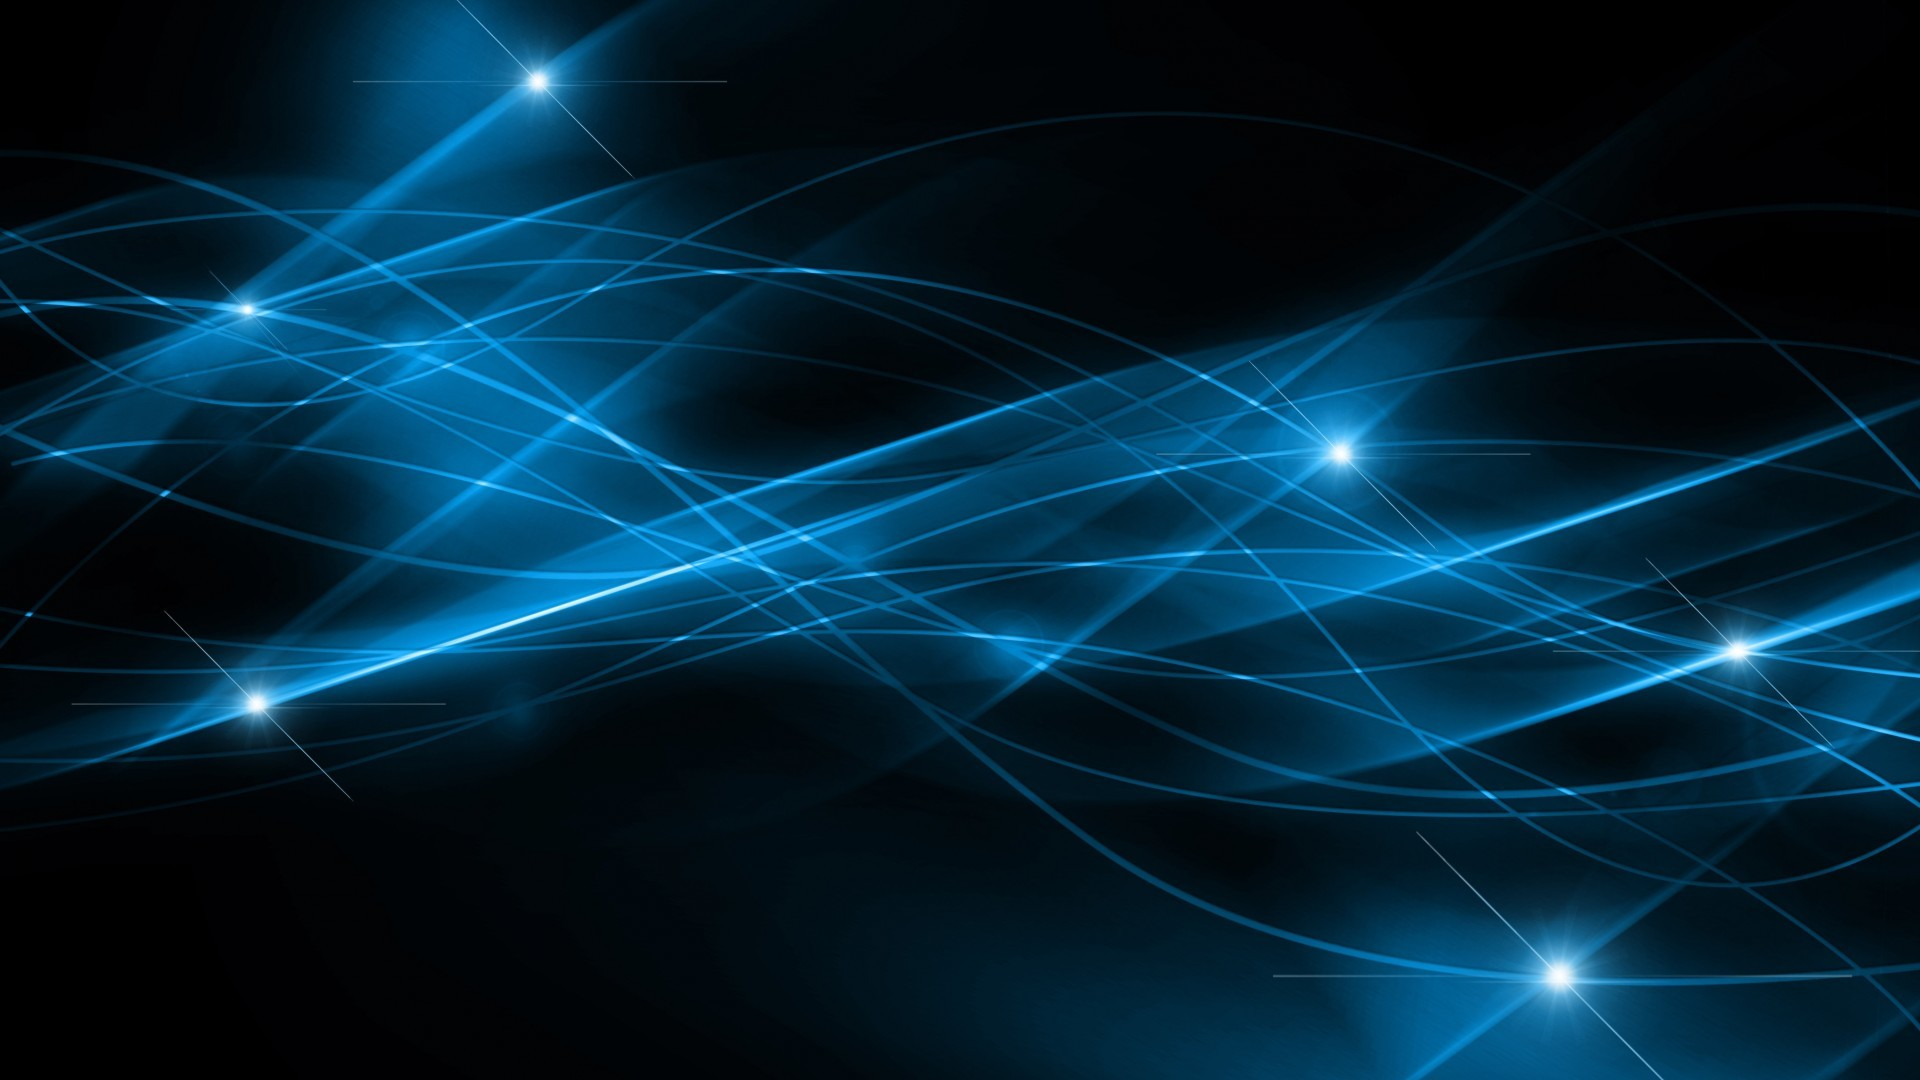 1920x1080 Black and blue abstract wallpaper background. Download · Black ...